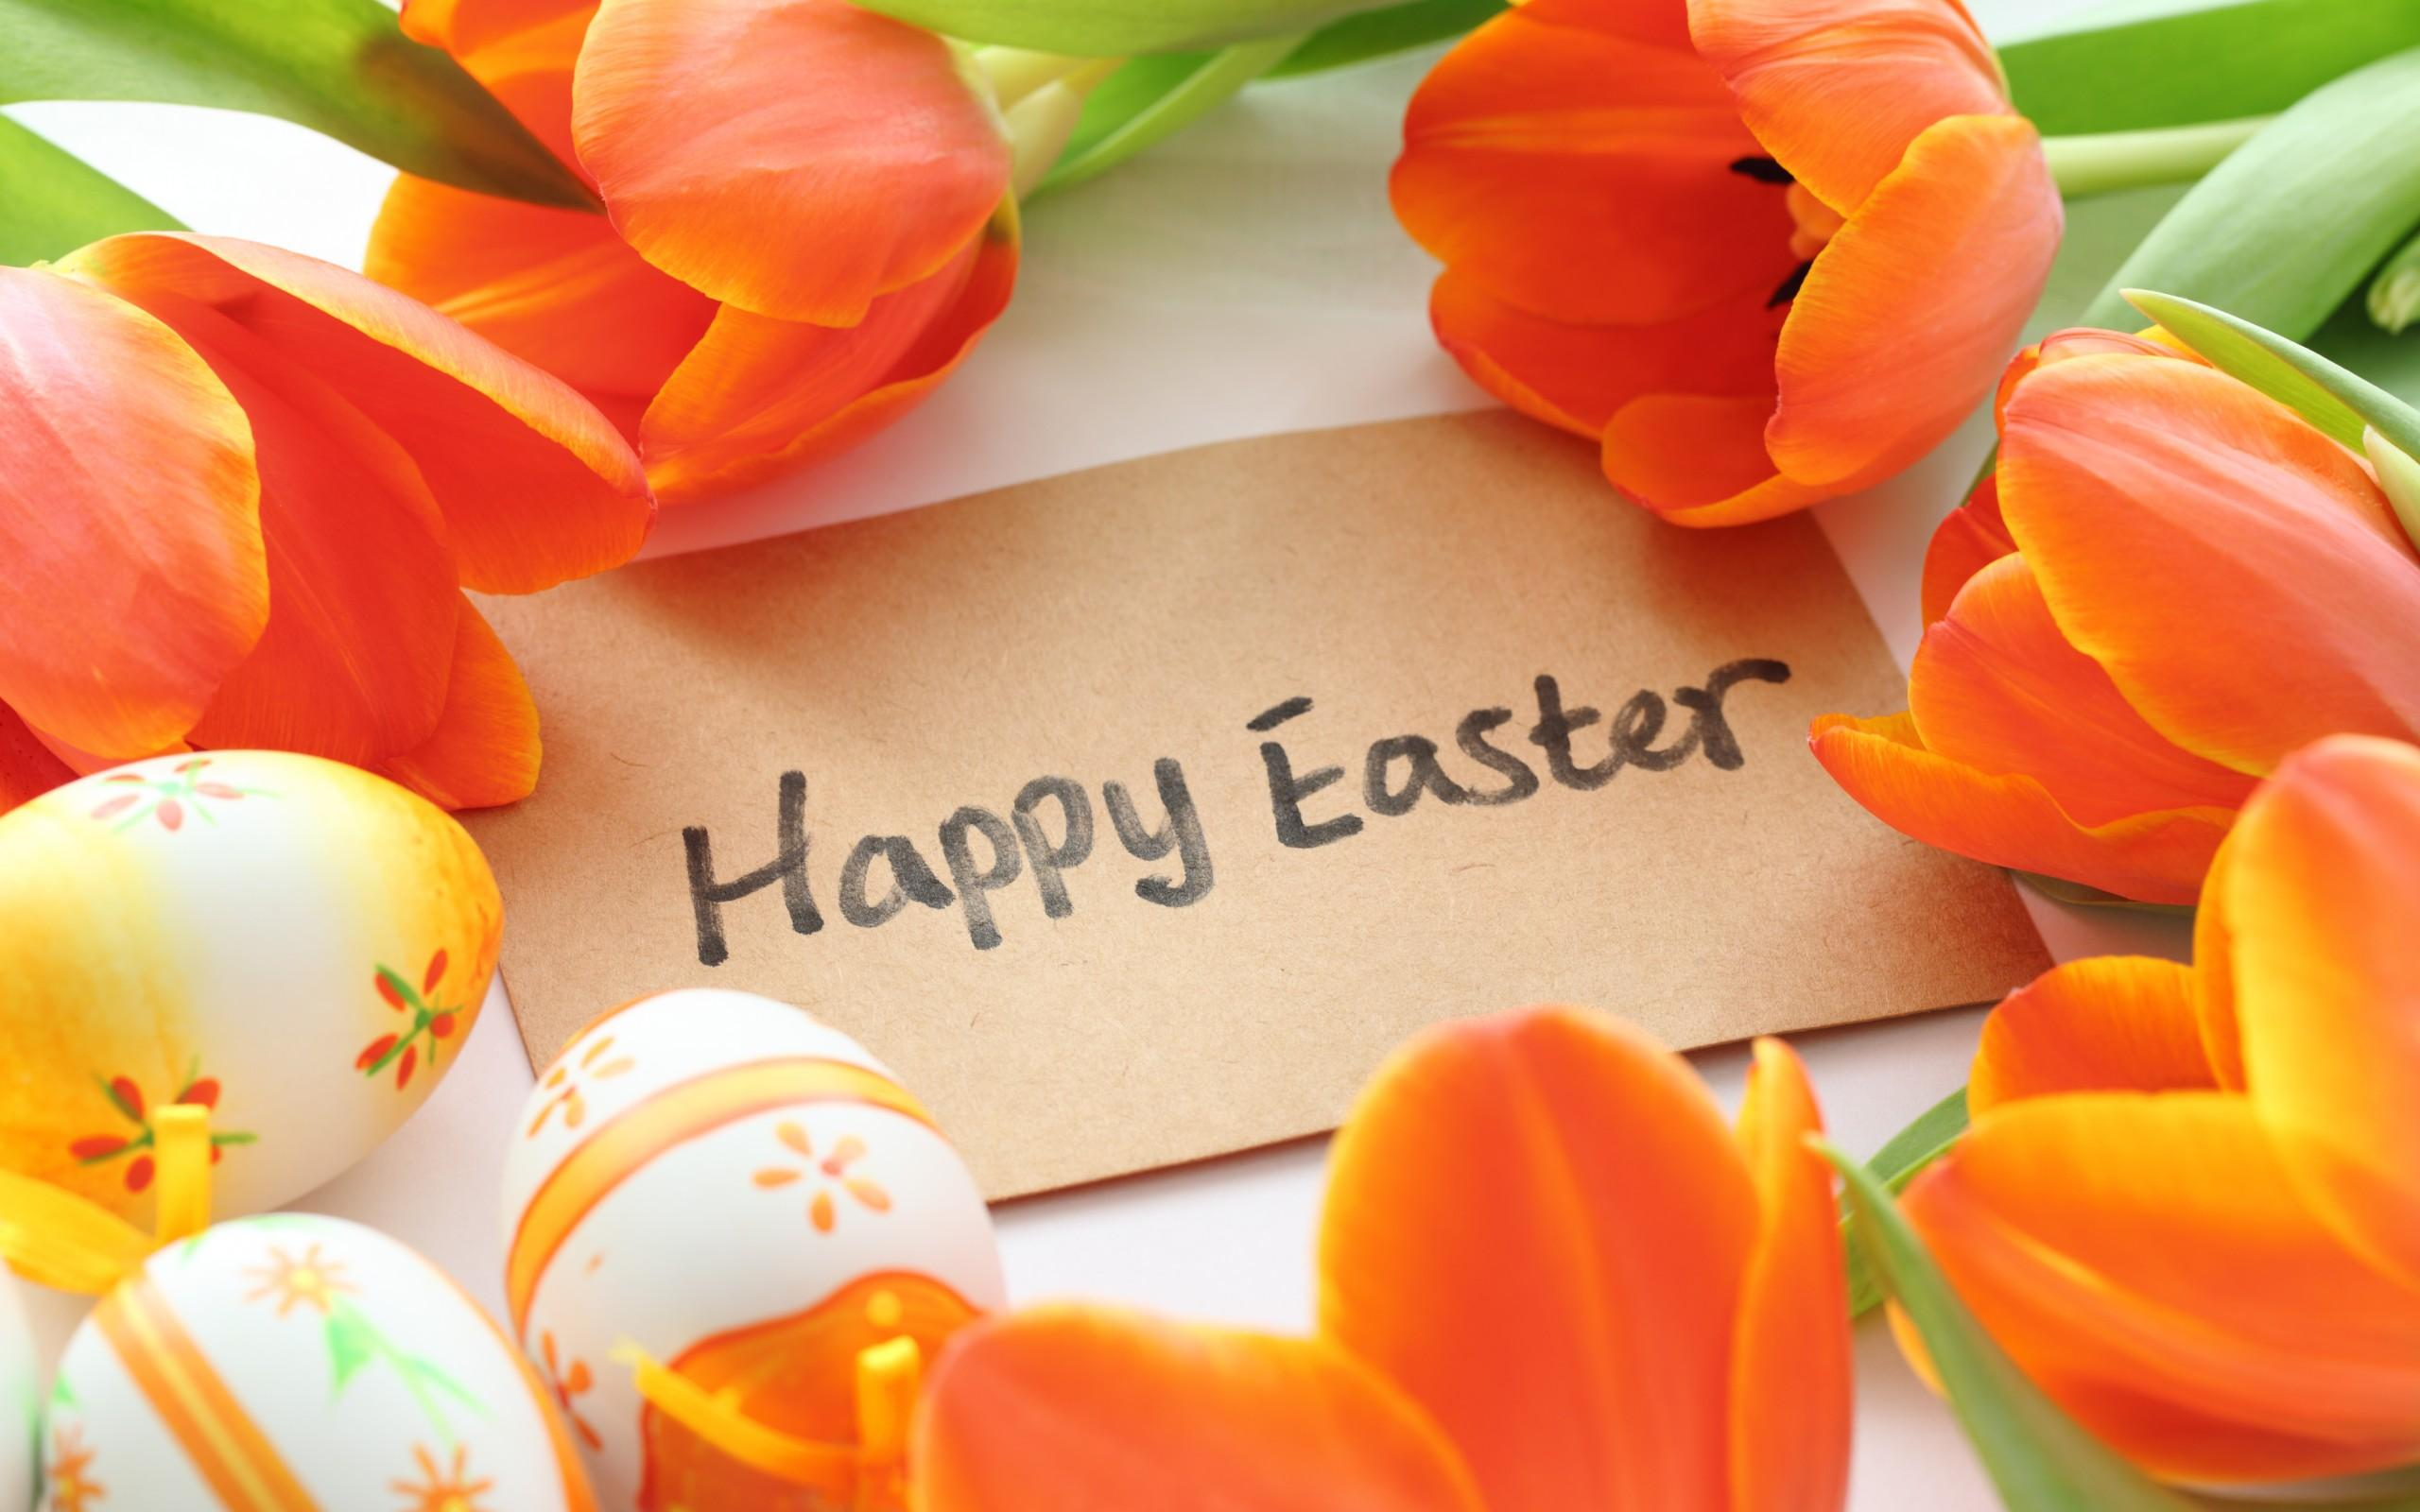 Happy Easter Day Wallpapers HD Easter Images 2560x1600